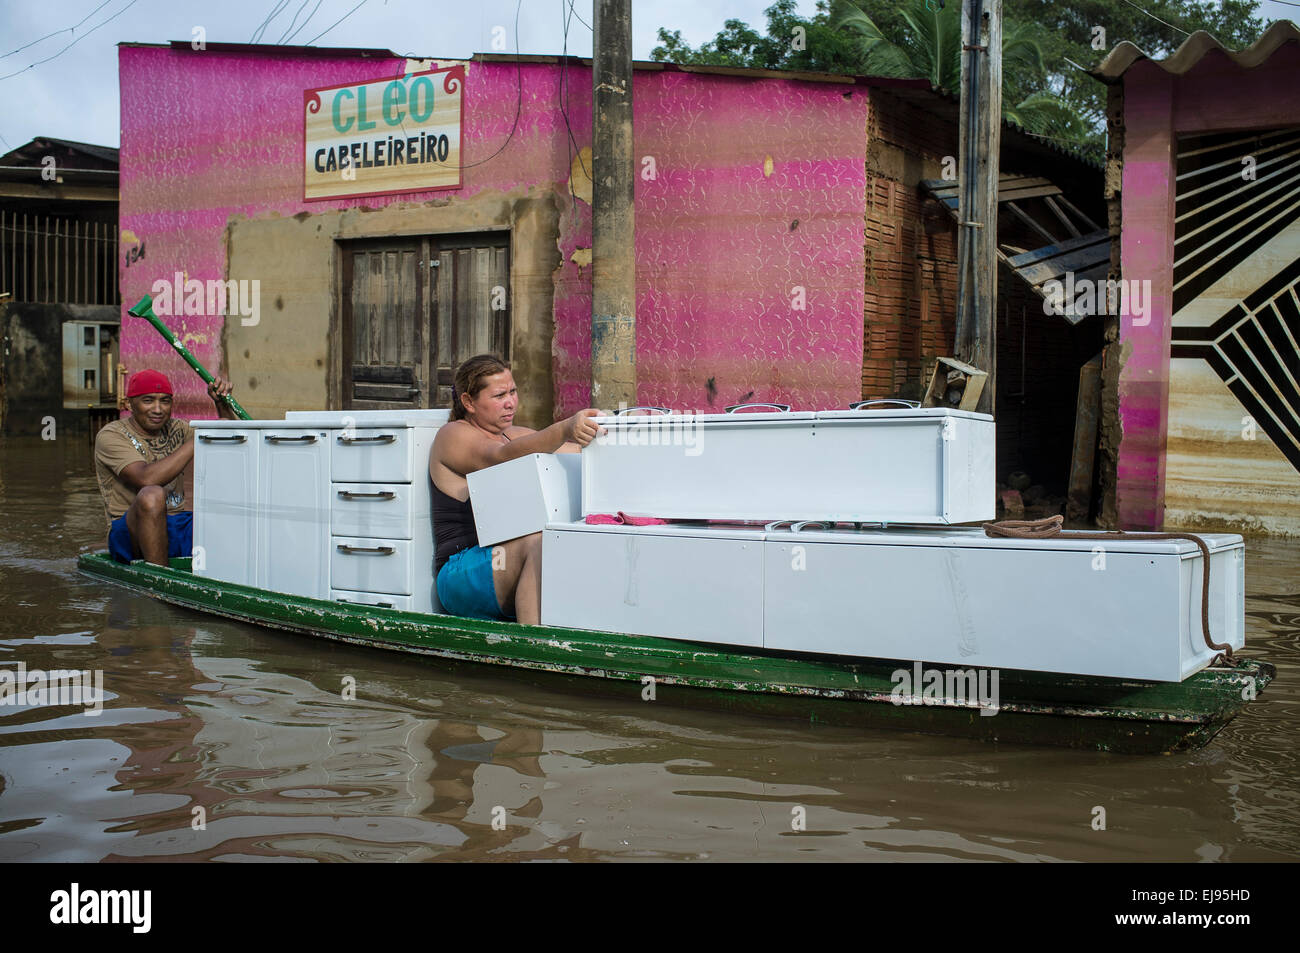 2015 flooding in Brazilian Amazon,  woman transports kitchen furniture in small boat through flooded street at Triangulo Stock Photo